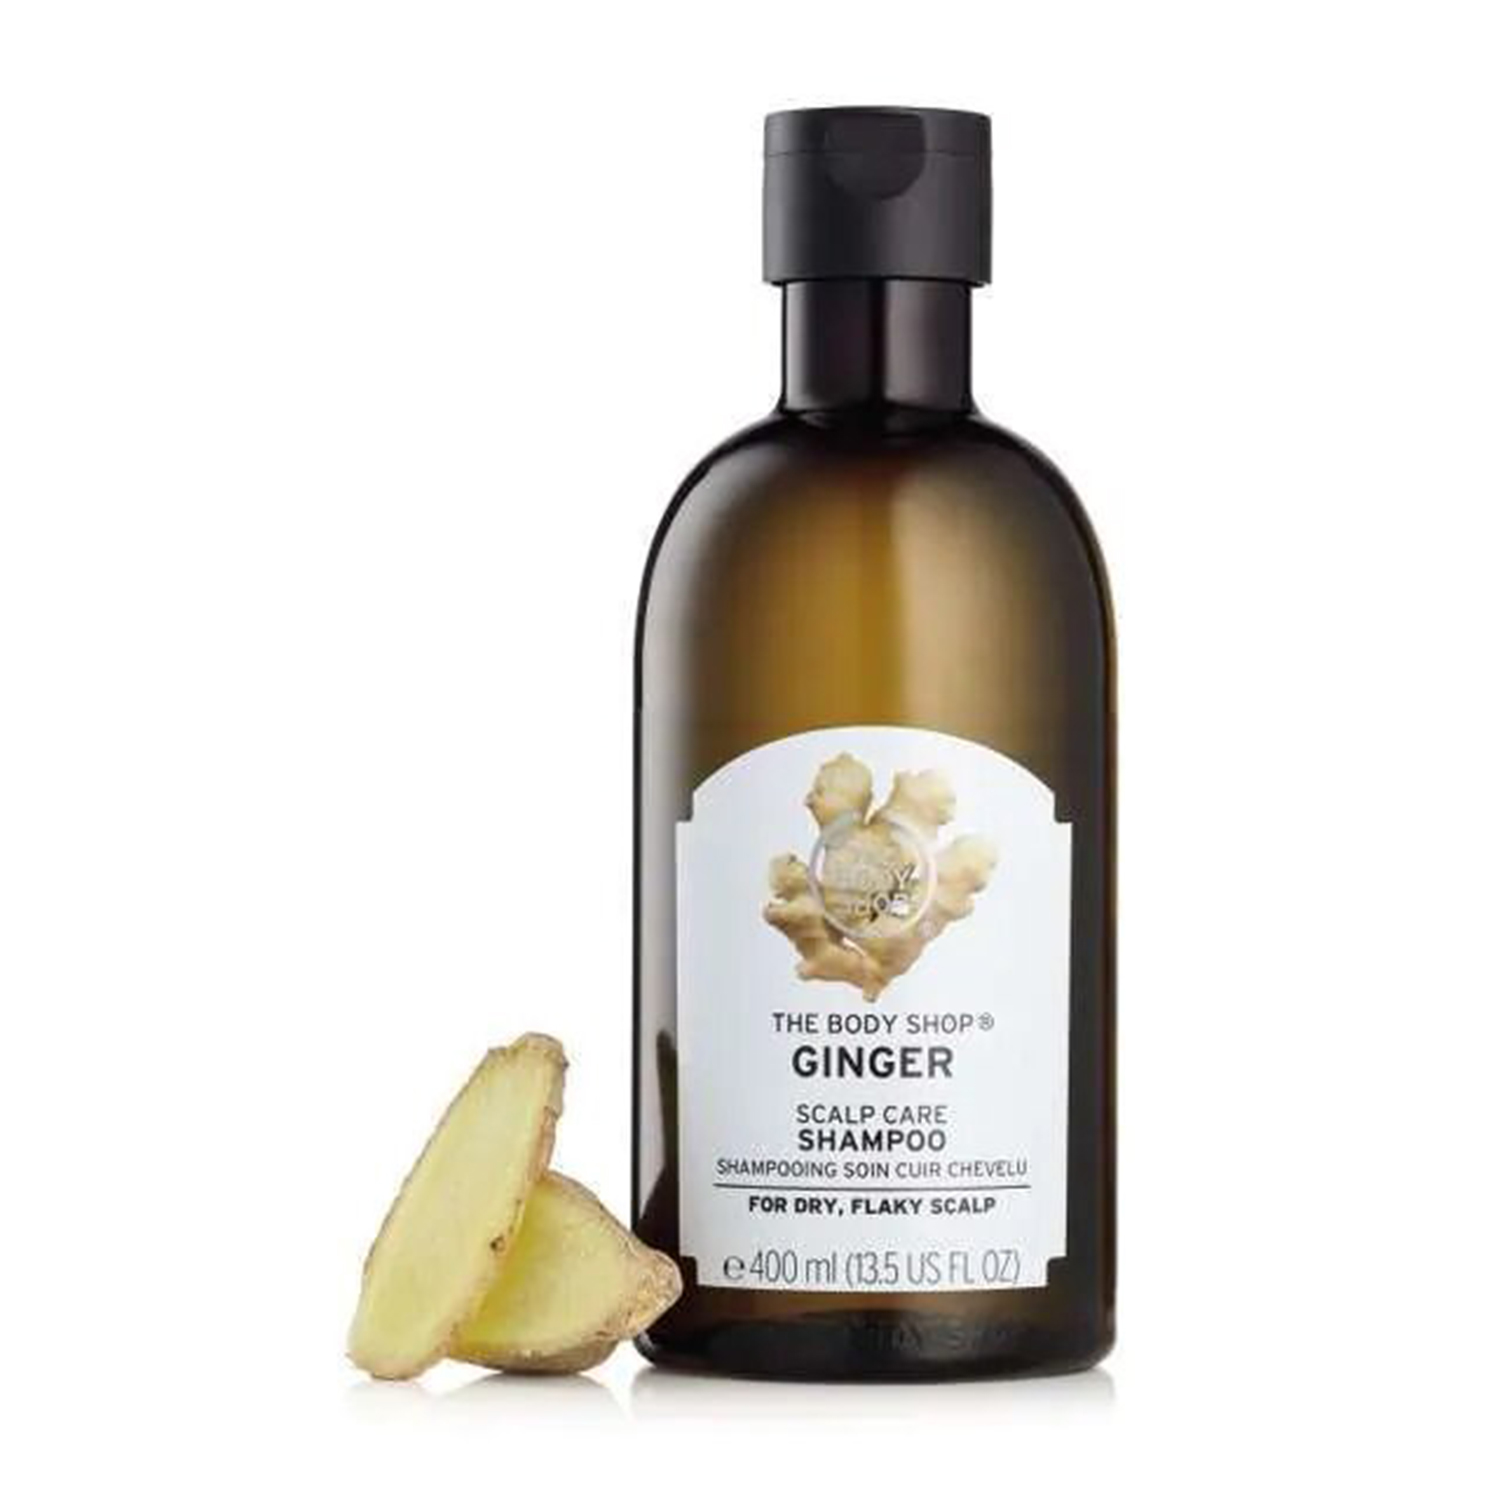 Ginger Scalp Care Shampoo